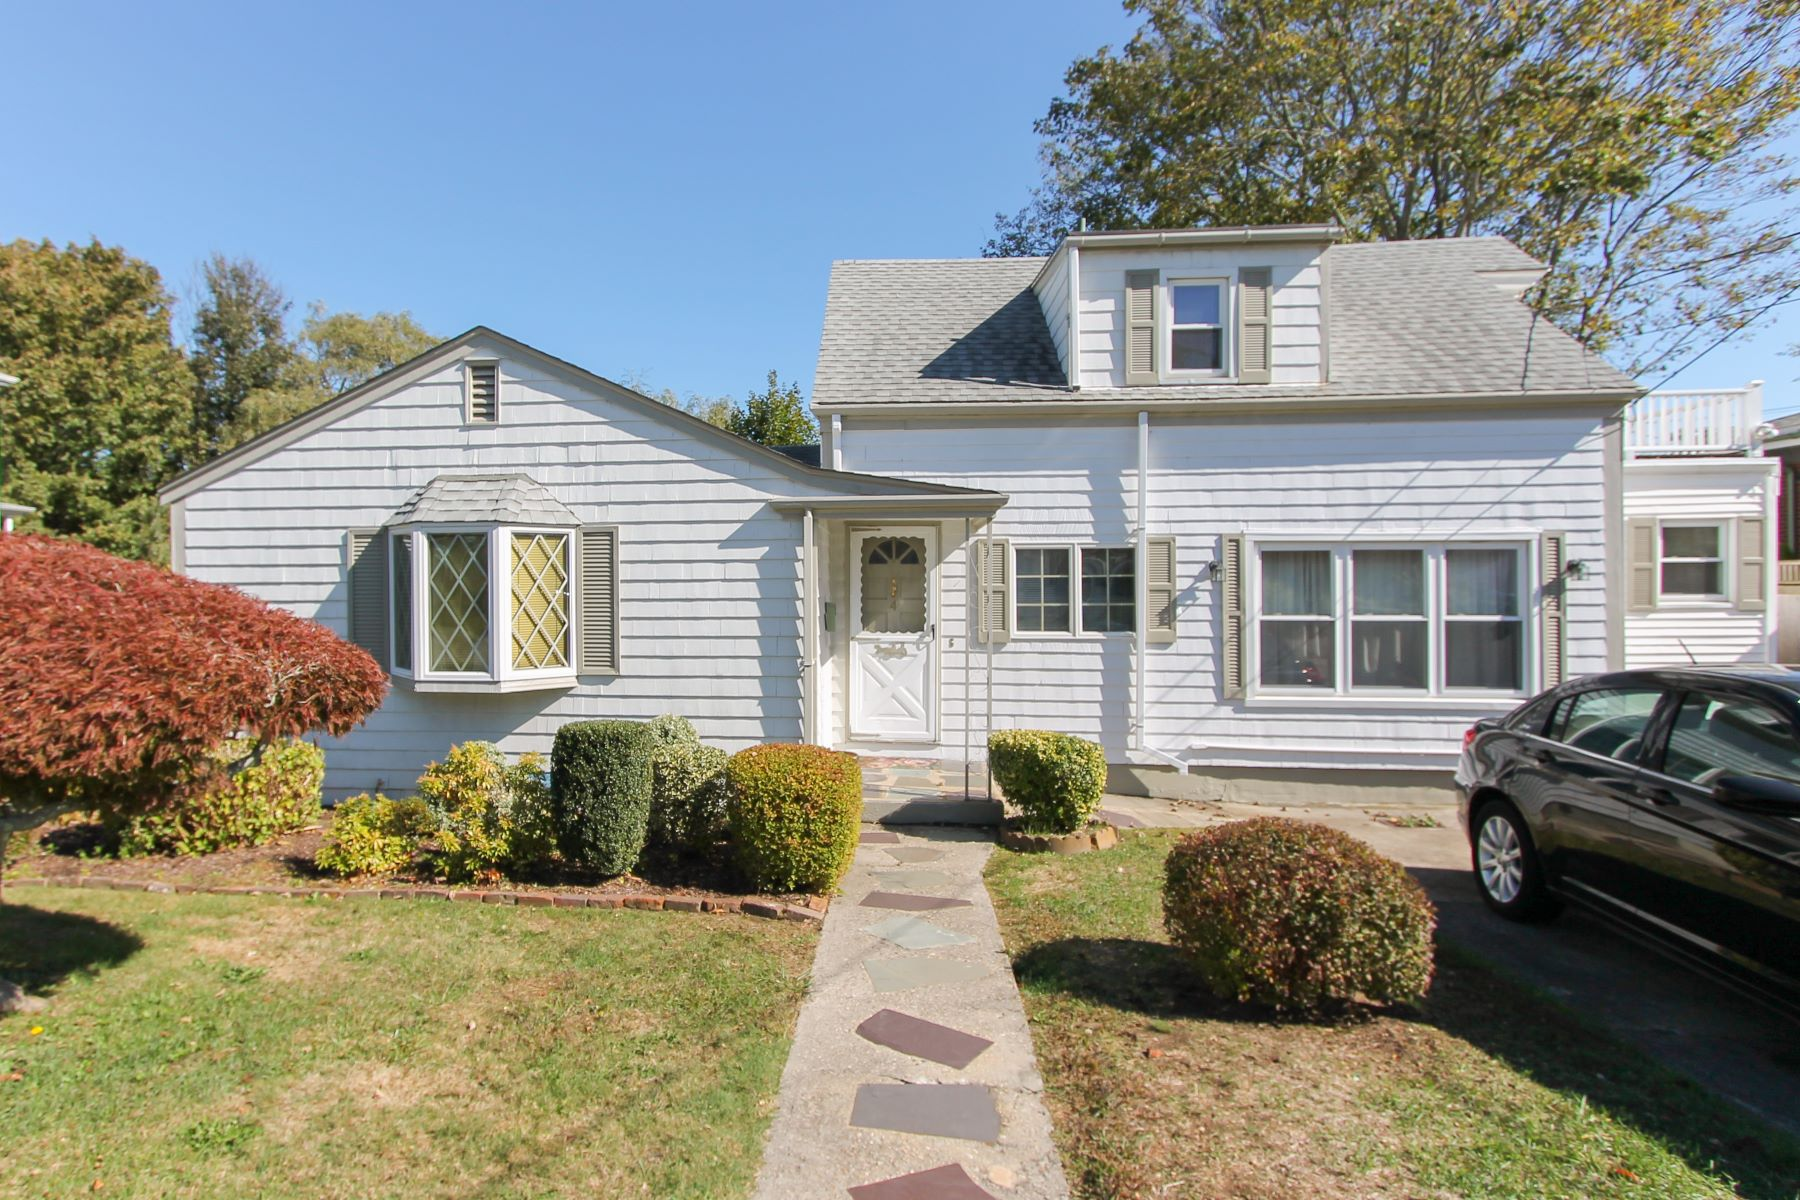 Multi-Family Homes for Sale at Middletown Two-Family 4 Rego Road Middletown, Rhode Island 02842 United States